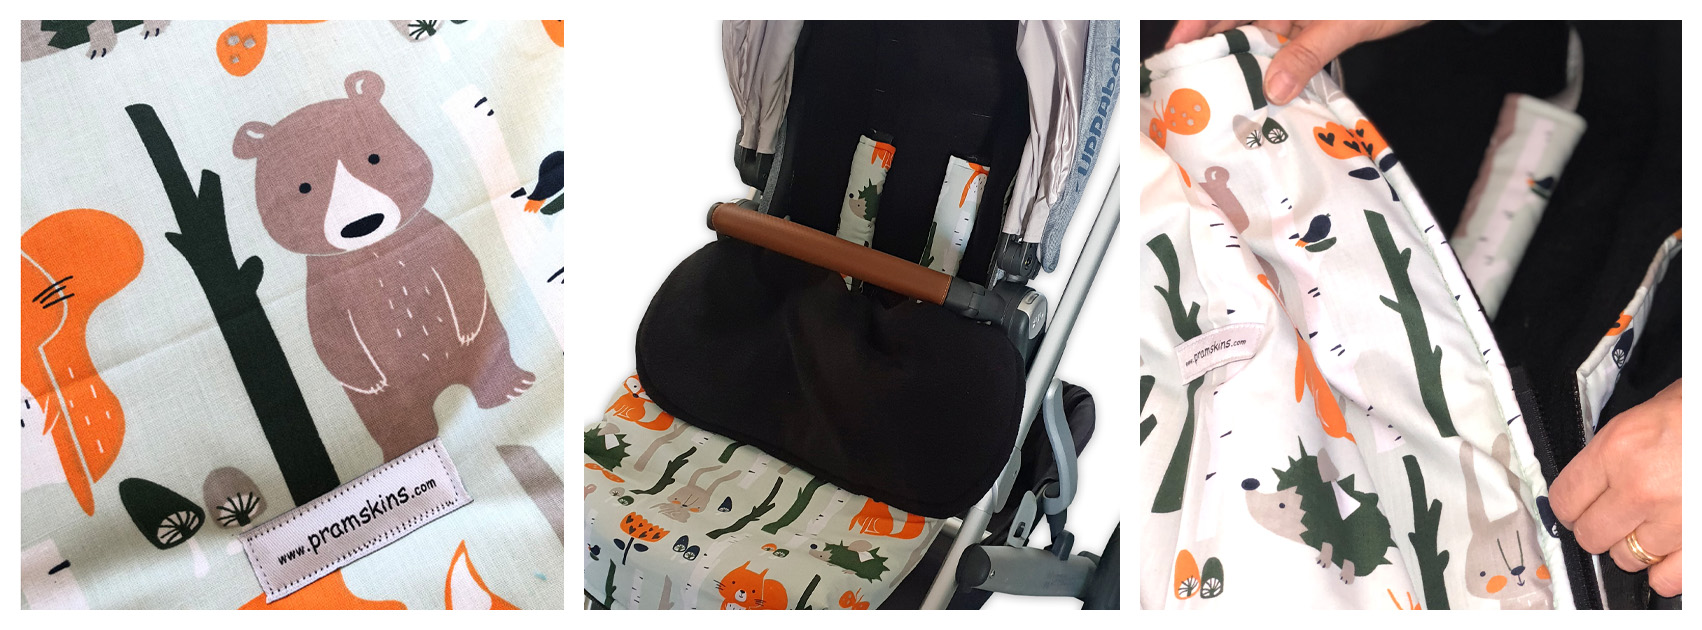 uppababy-snuggle-bag-category-collage-forest-animals.jpg